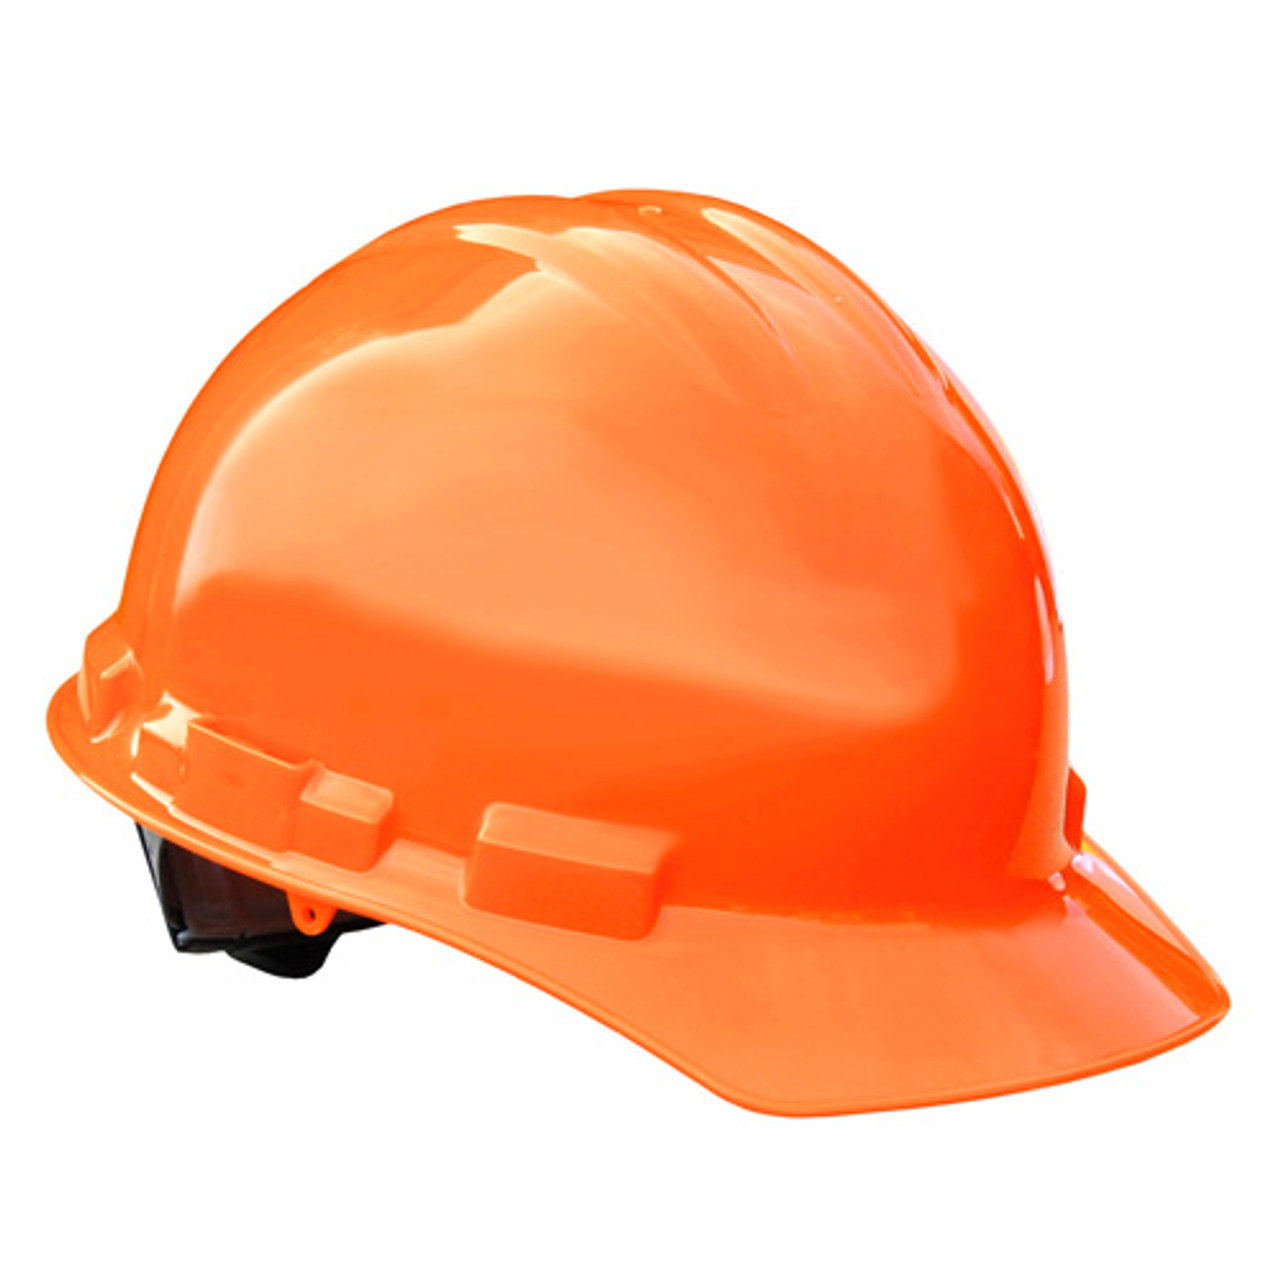 HiVis Orange Radians Hard Hat with Ratchet Suspension Made in The USA